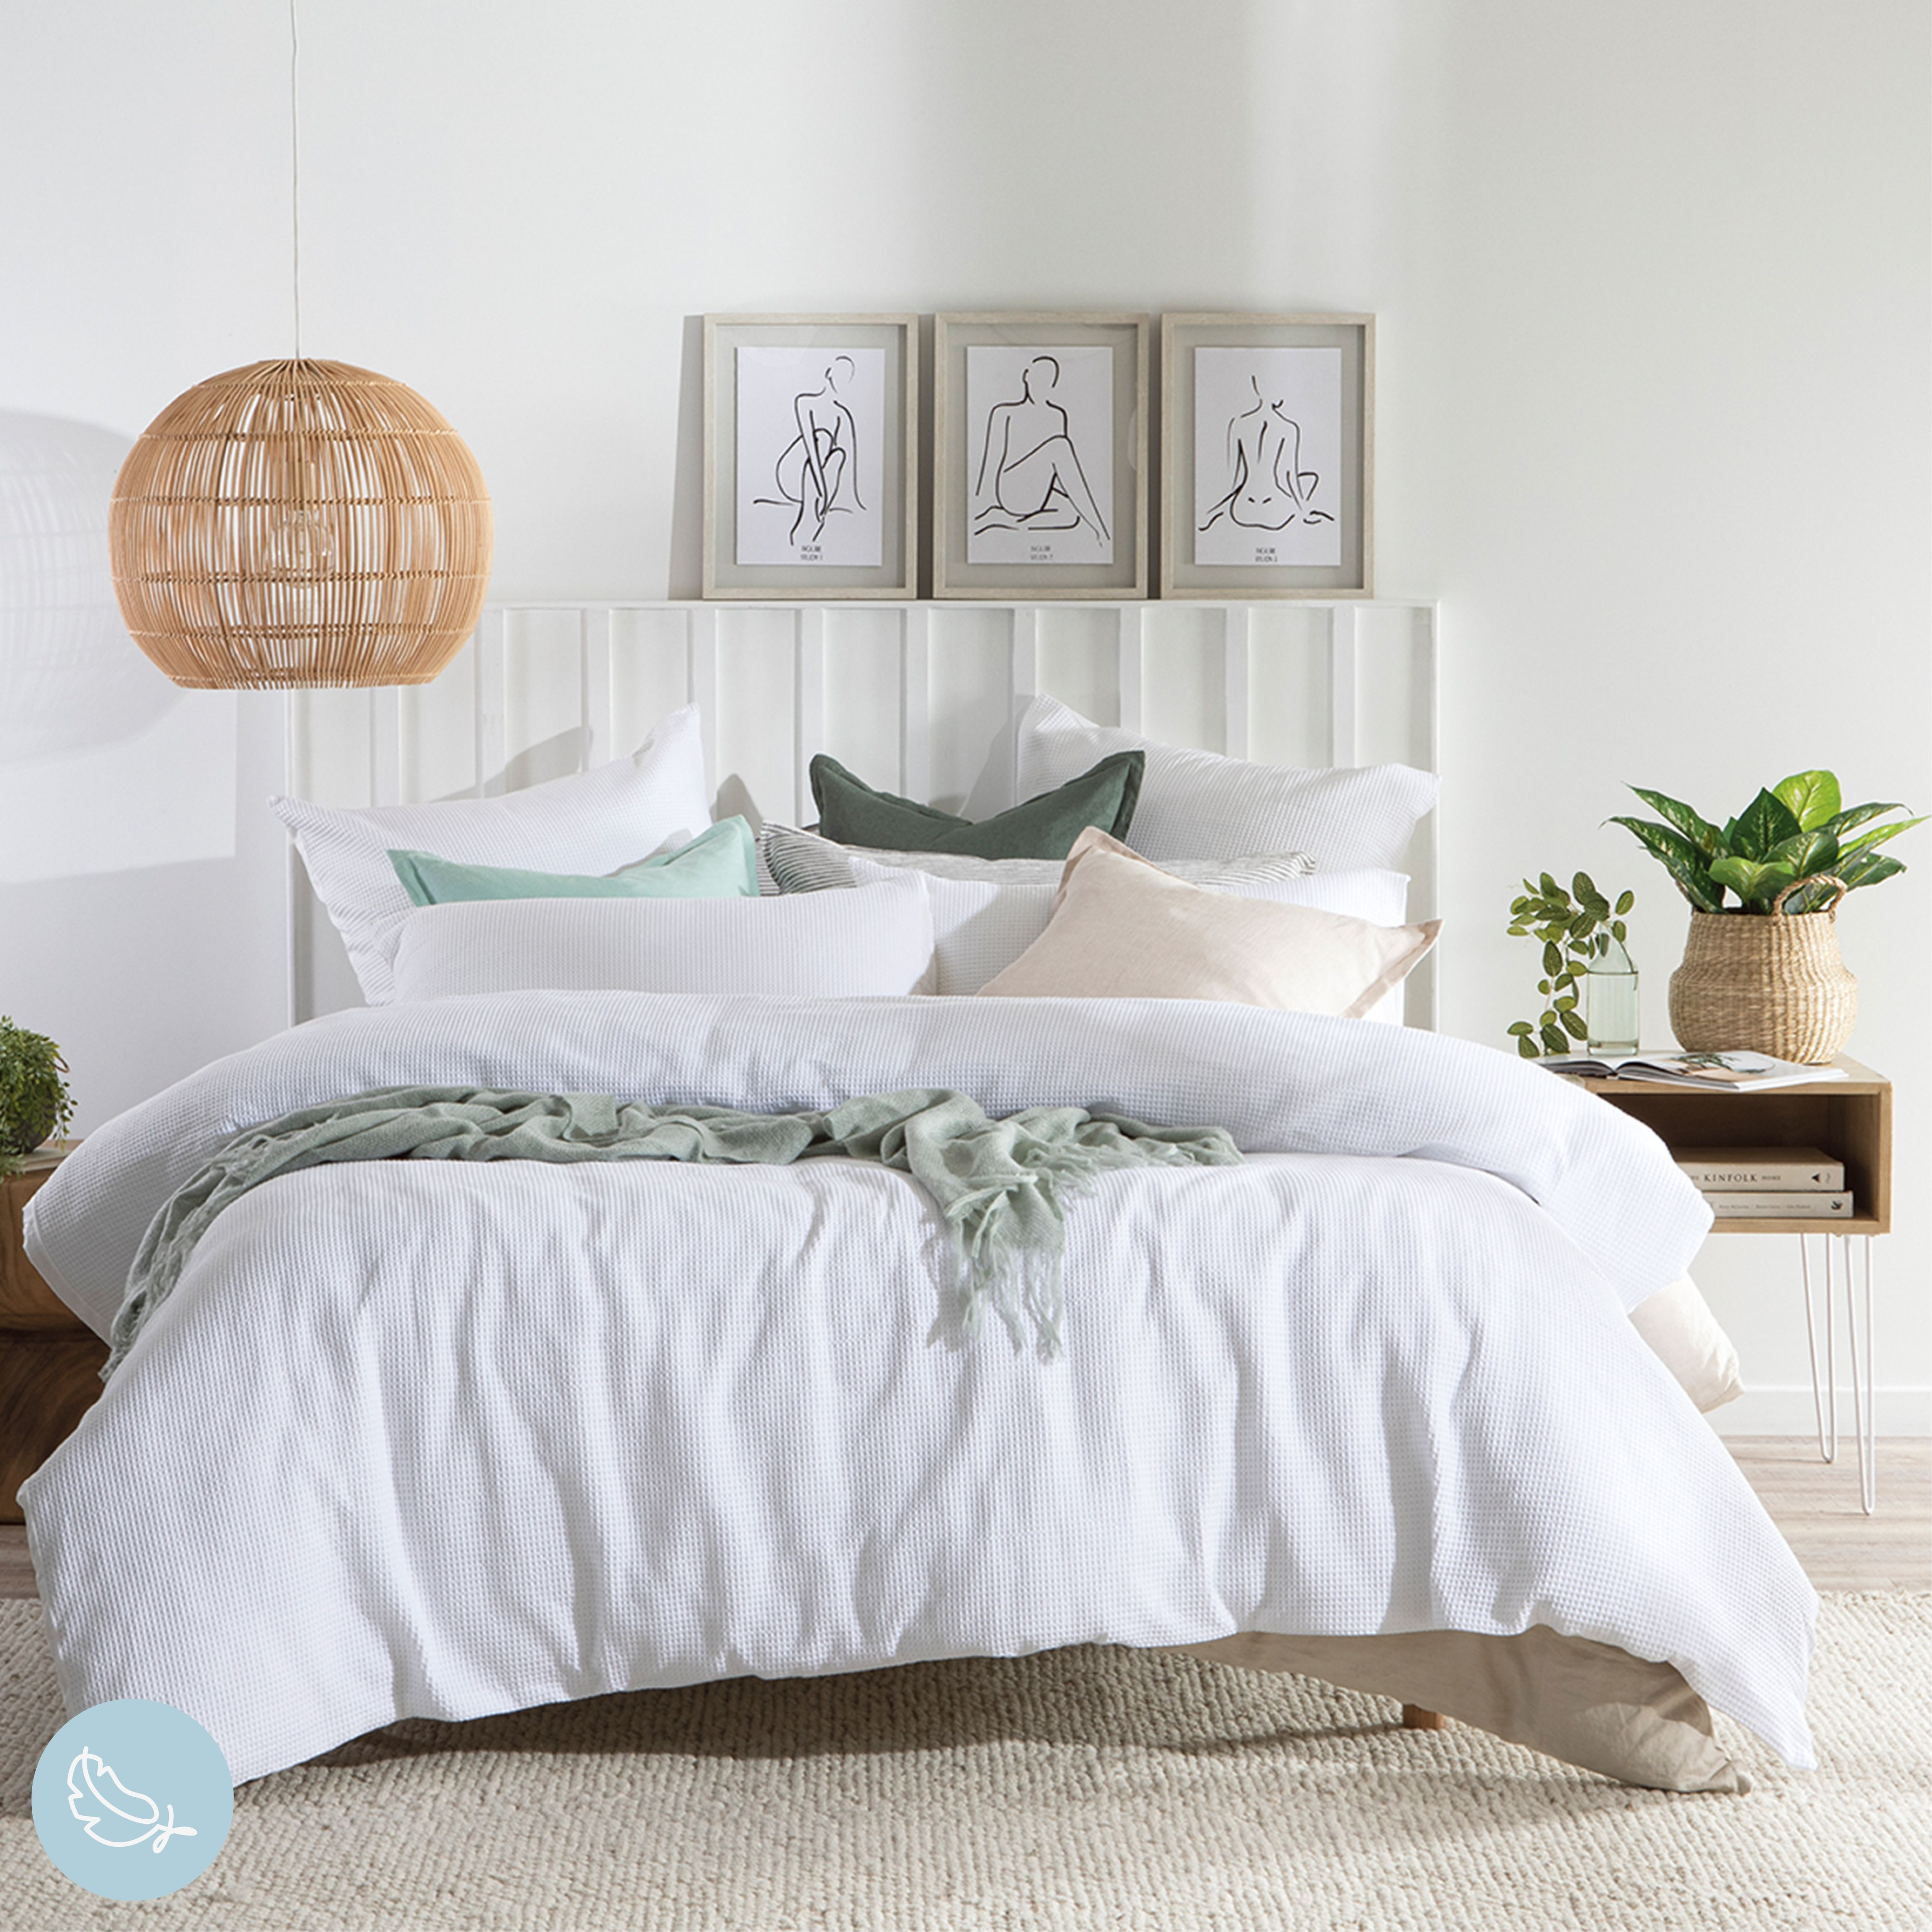 While white is a shade that can typically make your bedroom feel cooler and brighter in summer, it can also be easily styled with tonal winter shades to create a feeling of warmth during the cooler months. #PillowTalkAustralia #ForTheLoveOfComfort #bedroomdecor #bedroomstyling #quiltcoverset #quilt #bedroom #bedroomstyle #diyhomedecor